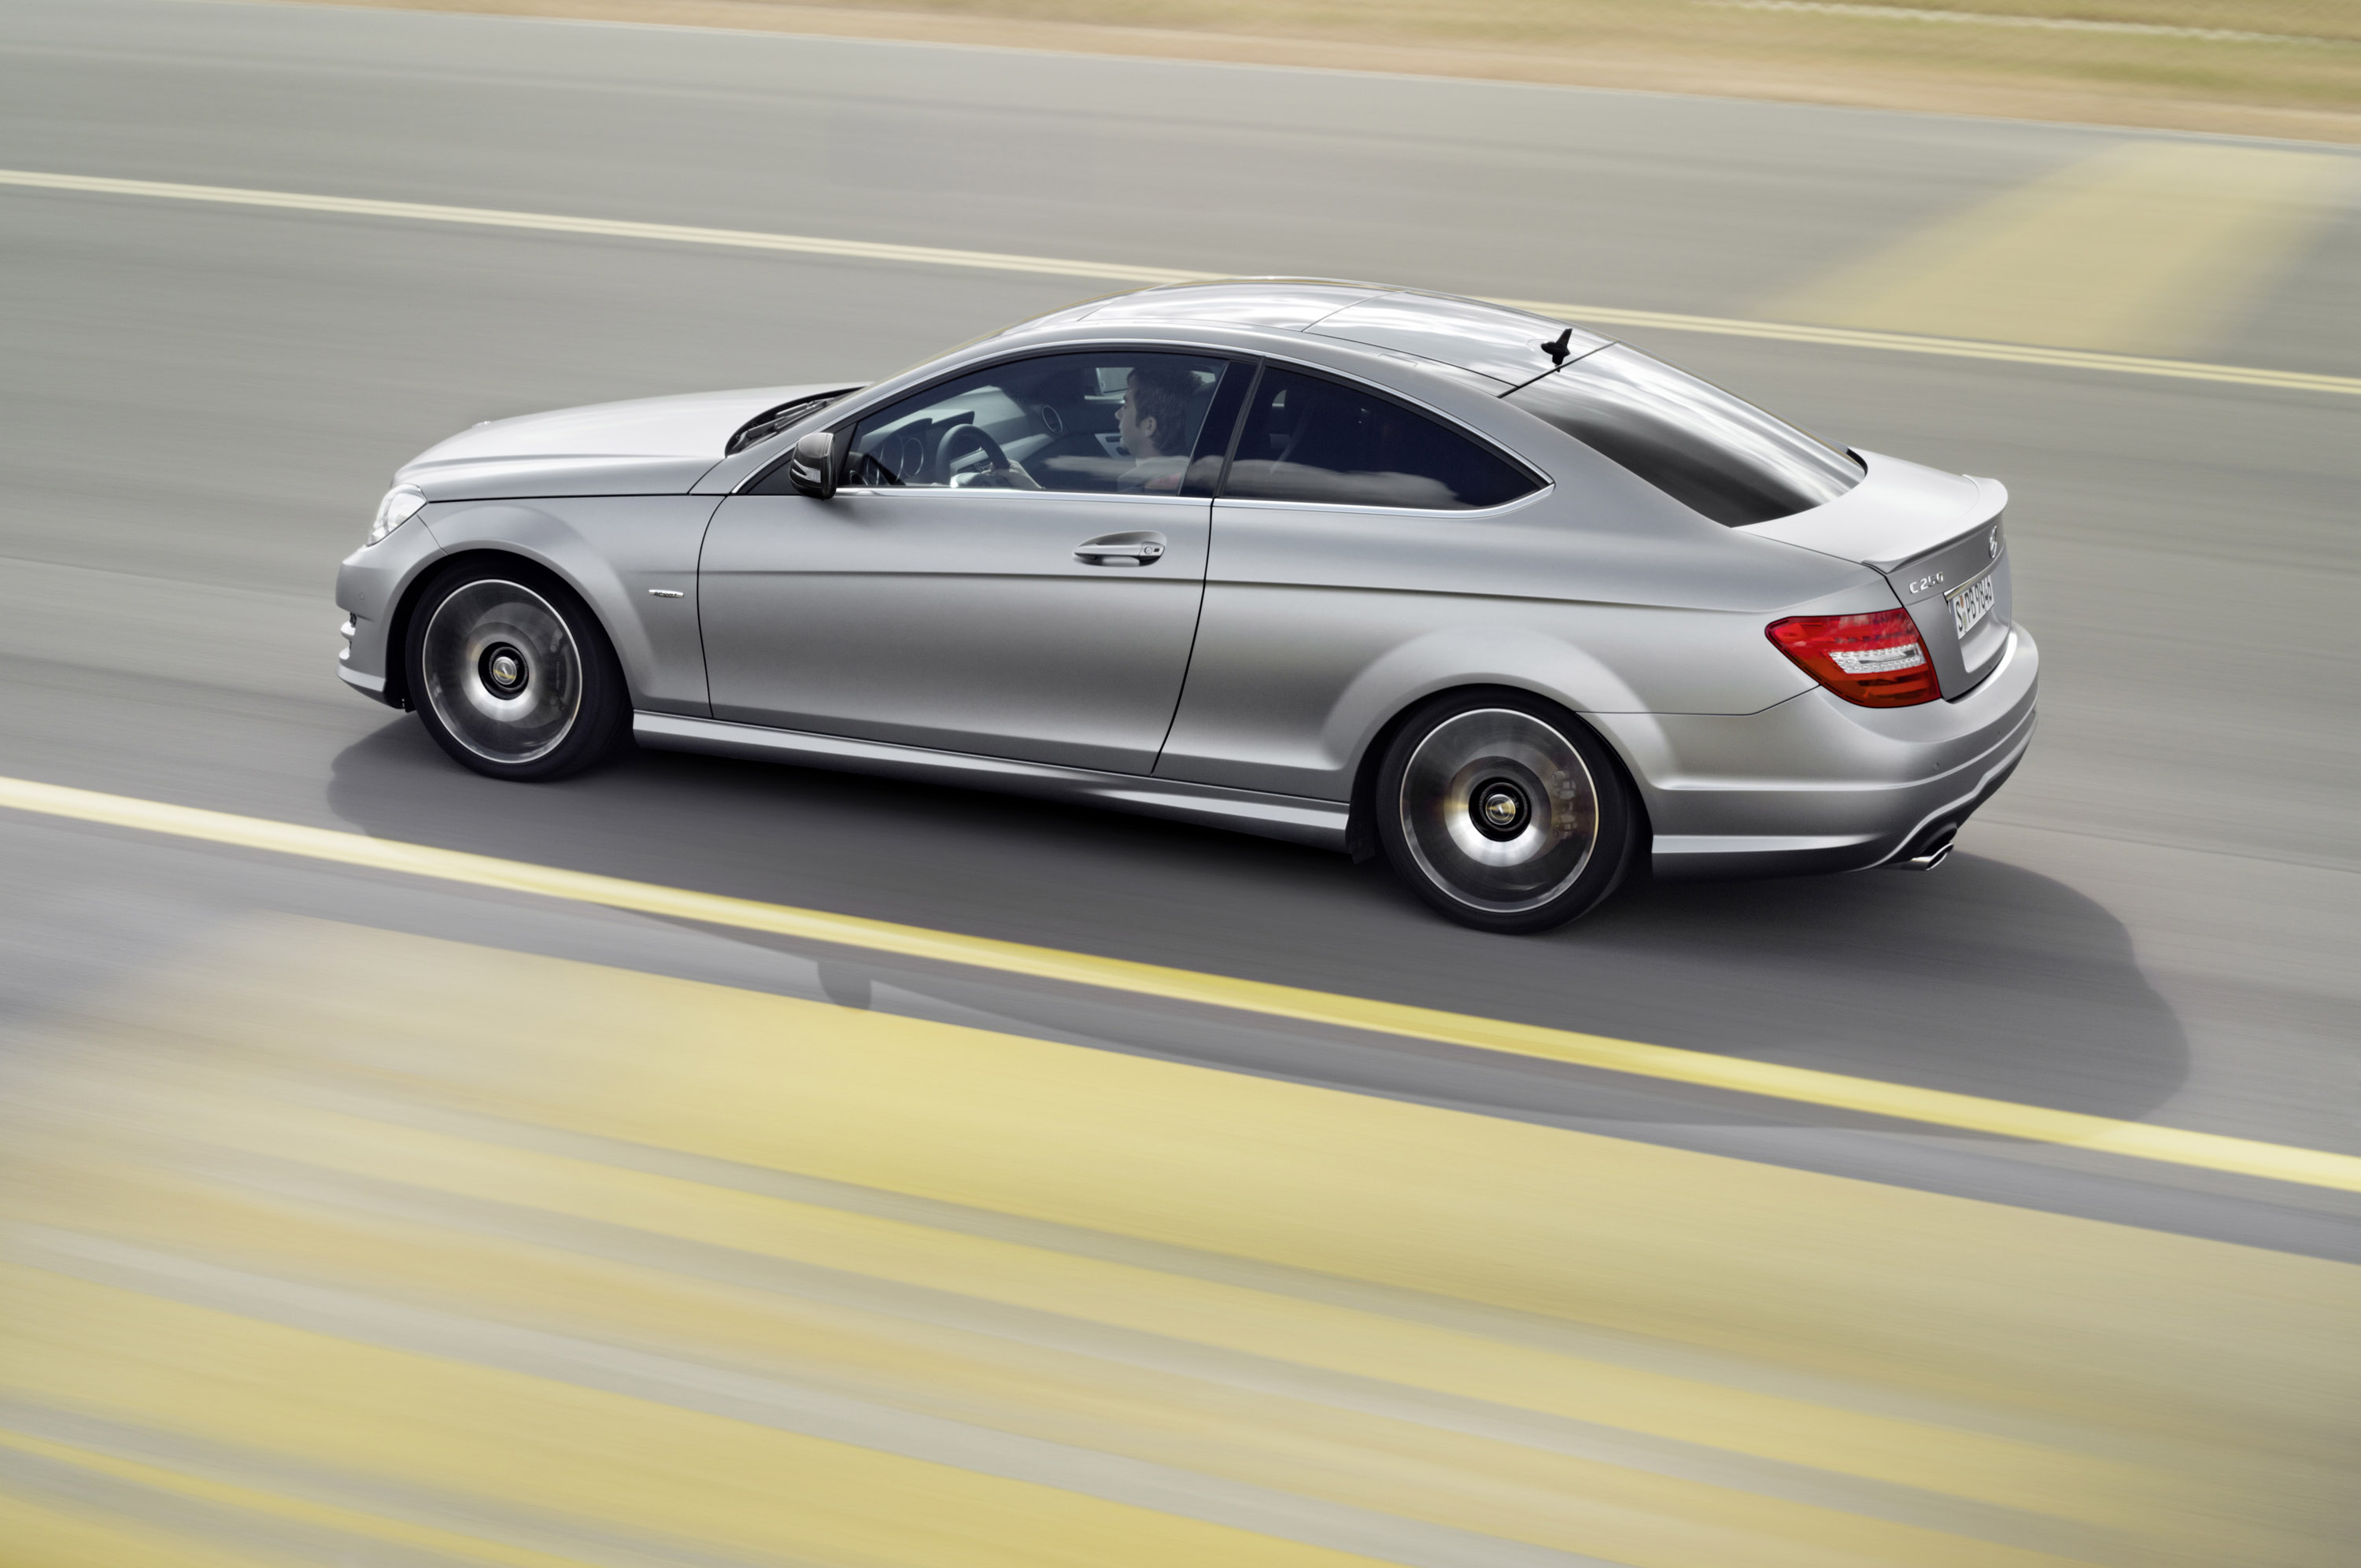 Mercedes benz upgrades c class e class and slk models for Mercedes benz c250 performance upgrades